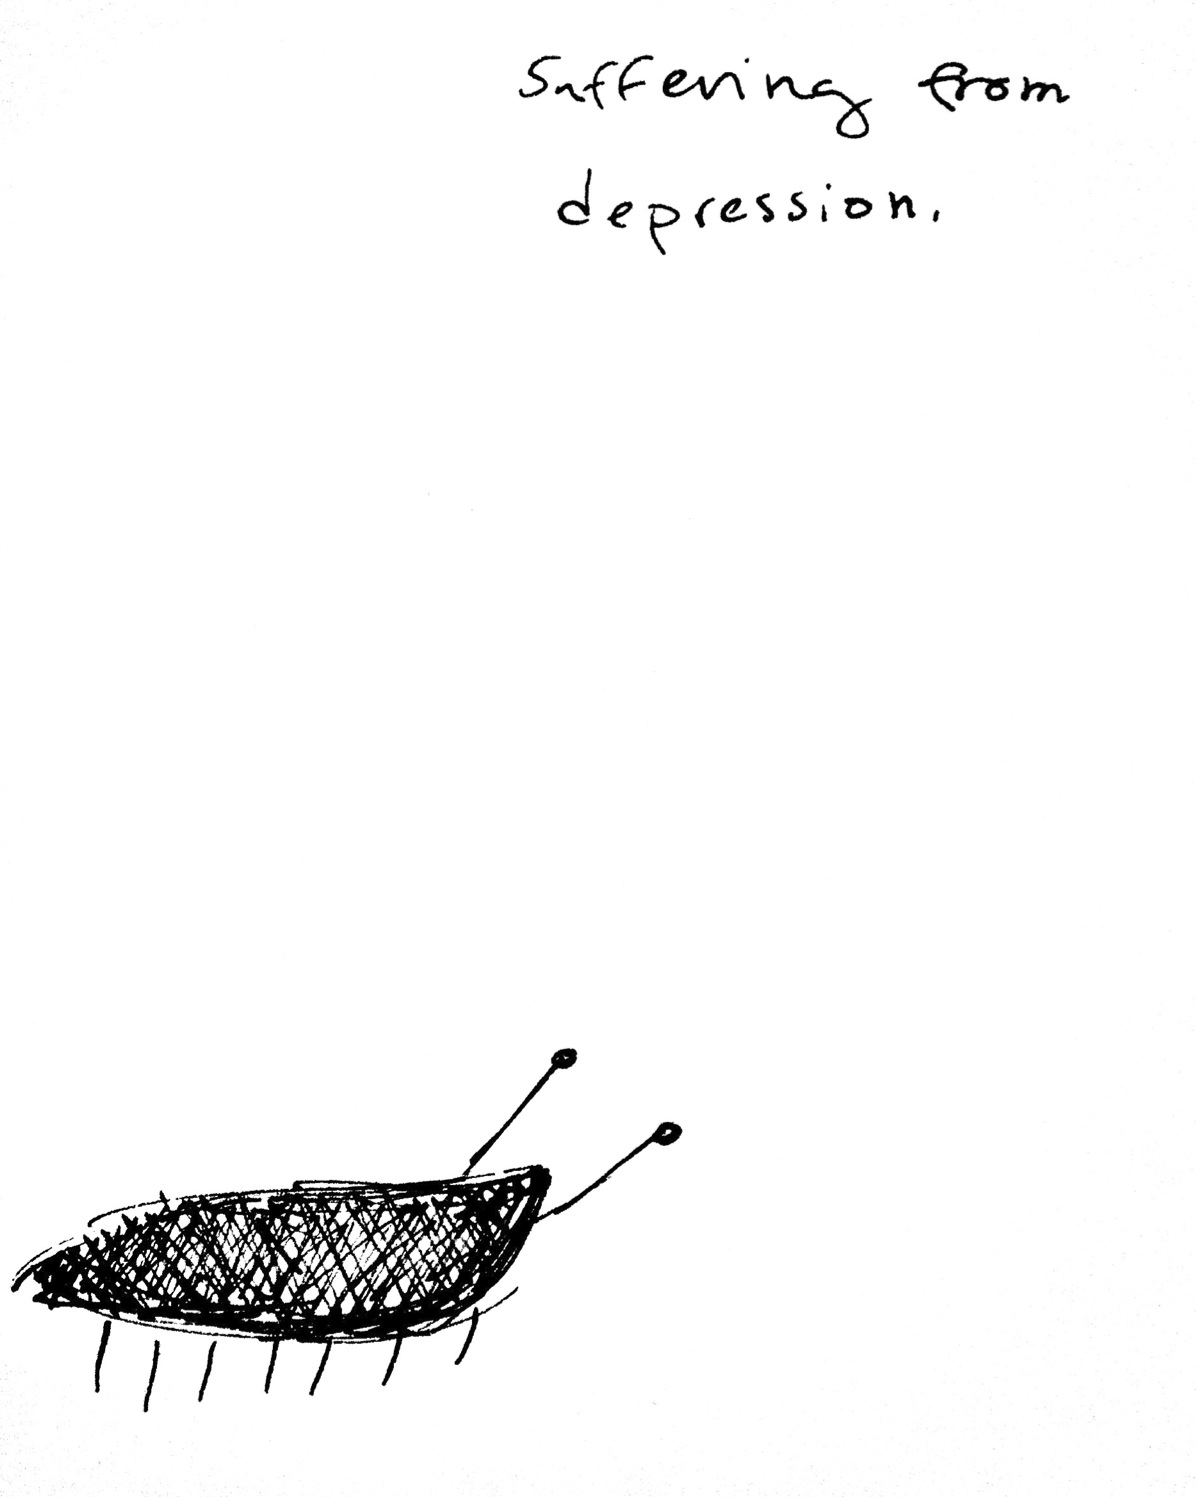 Suffering from Depression